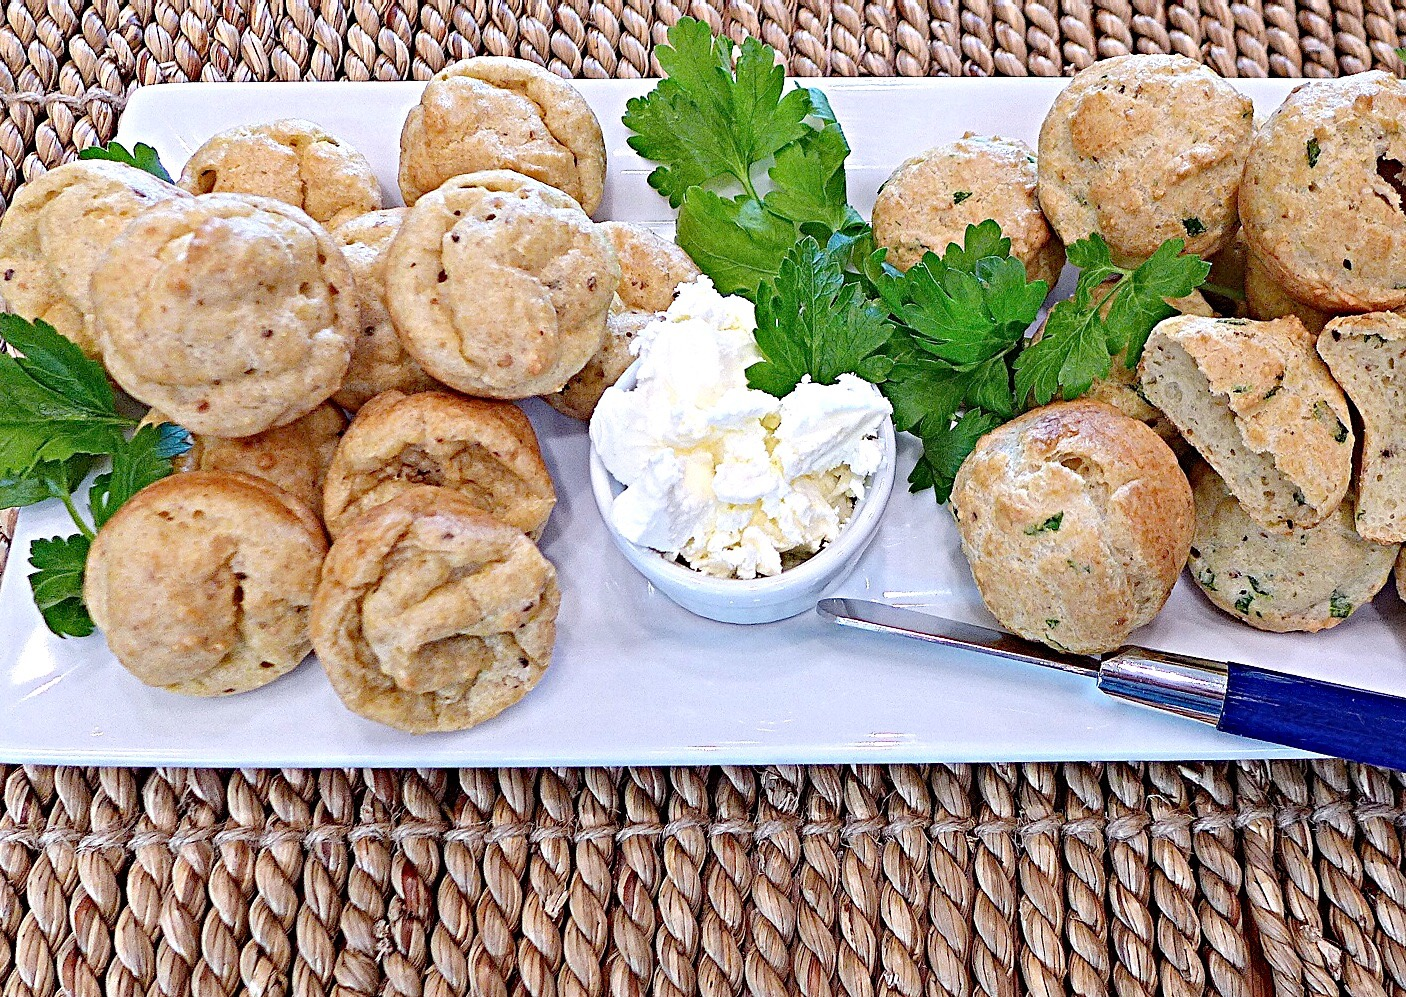 Passover Puffs make a welcome bread alternative during Passover